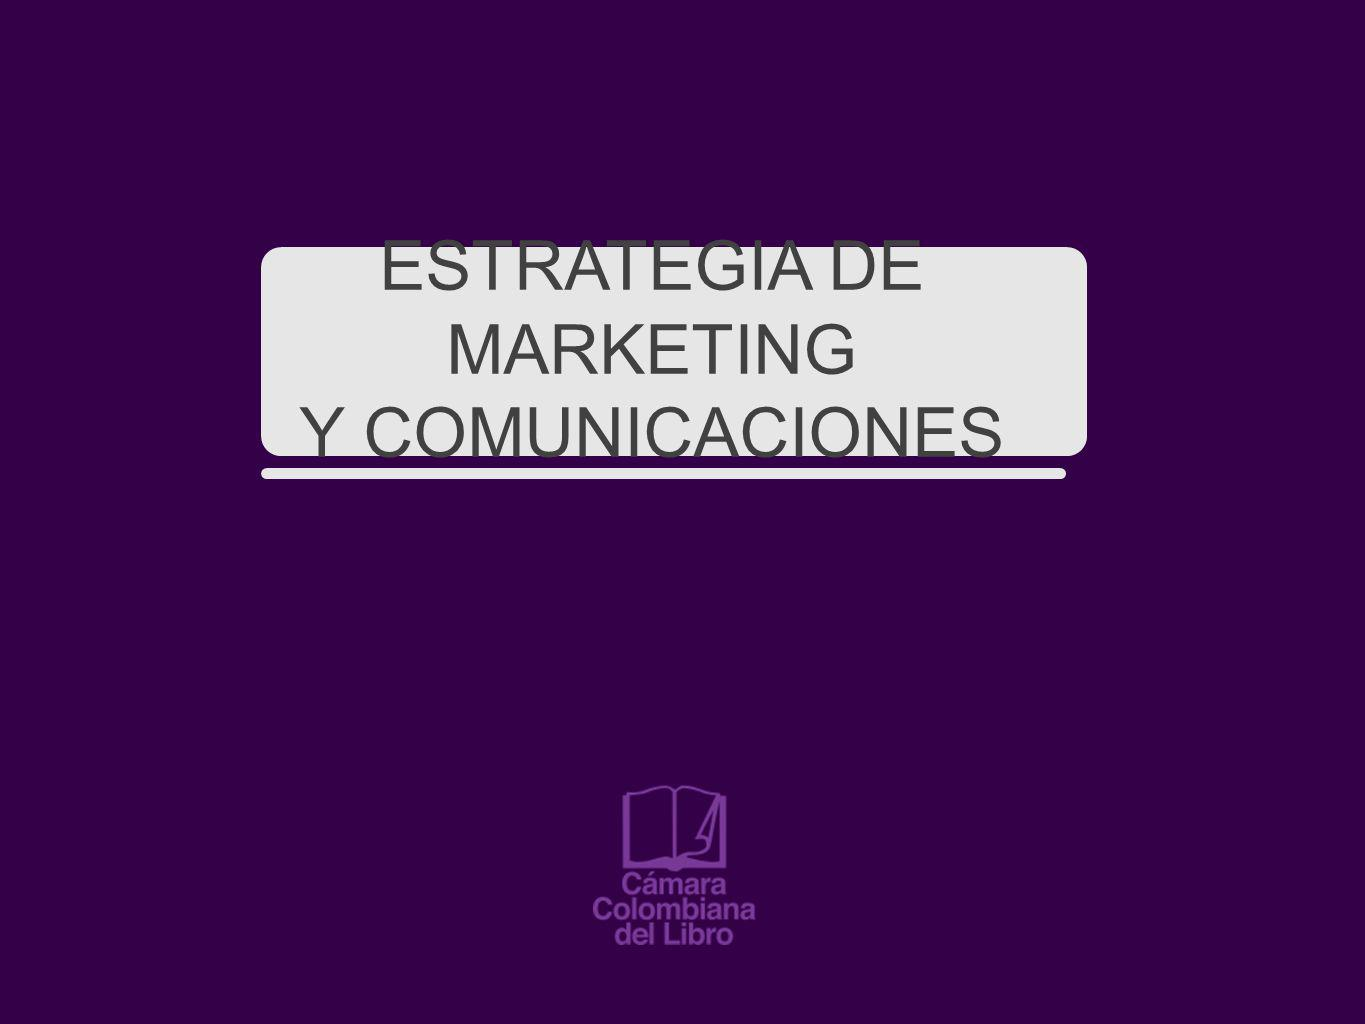 ESTRATEGIA DE MARKETING Y COMUNICACIONES